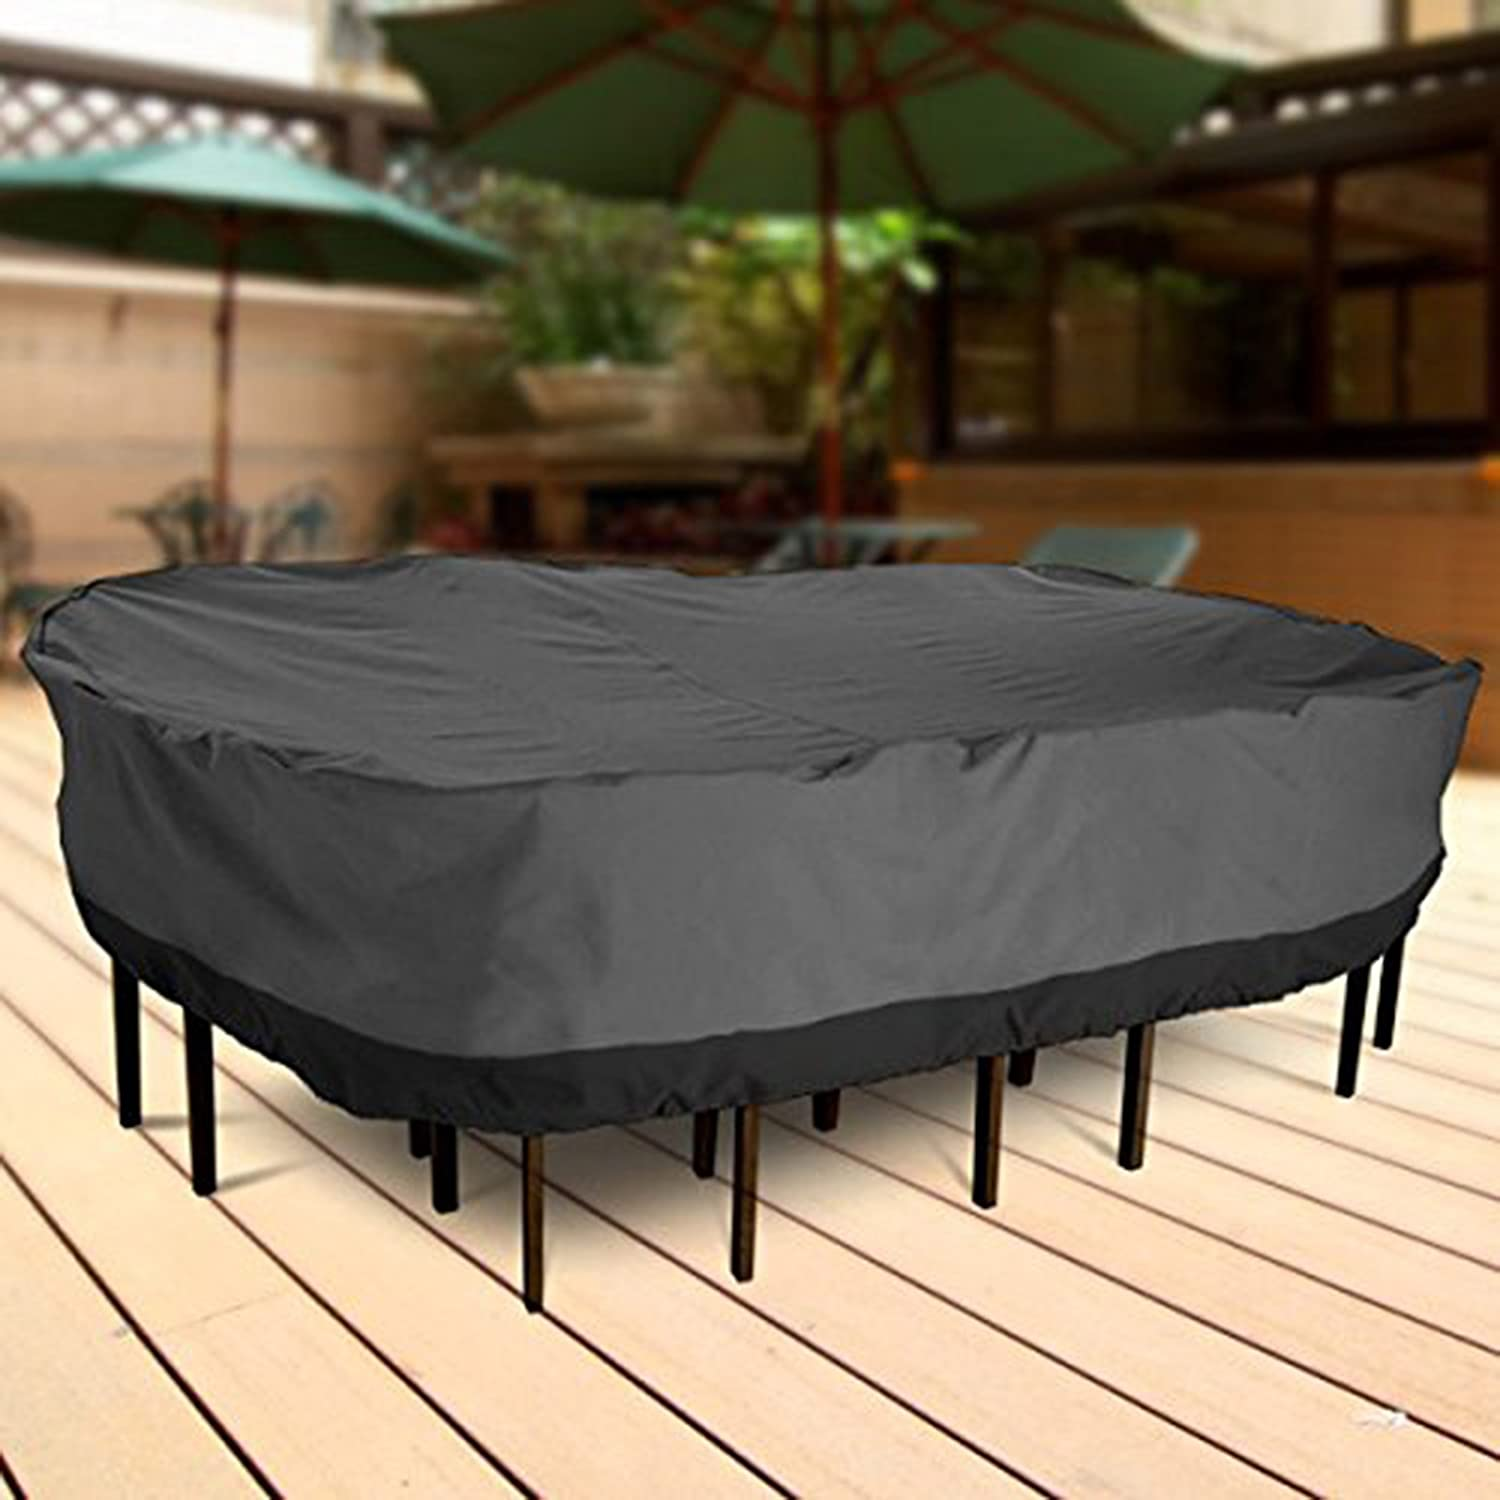 Amazon NEH Outdoor Patio Furniture Table and Chairs Cover